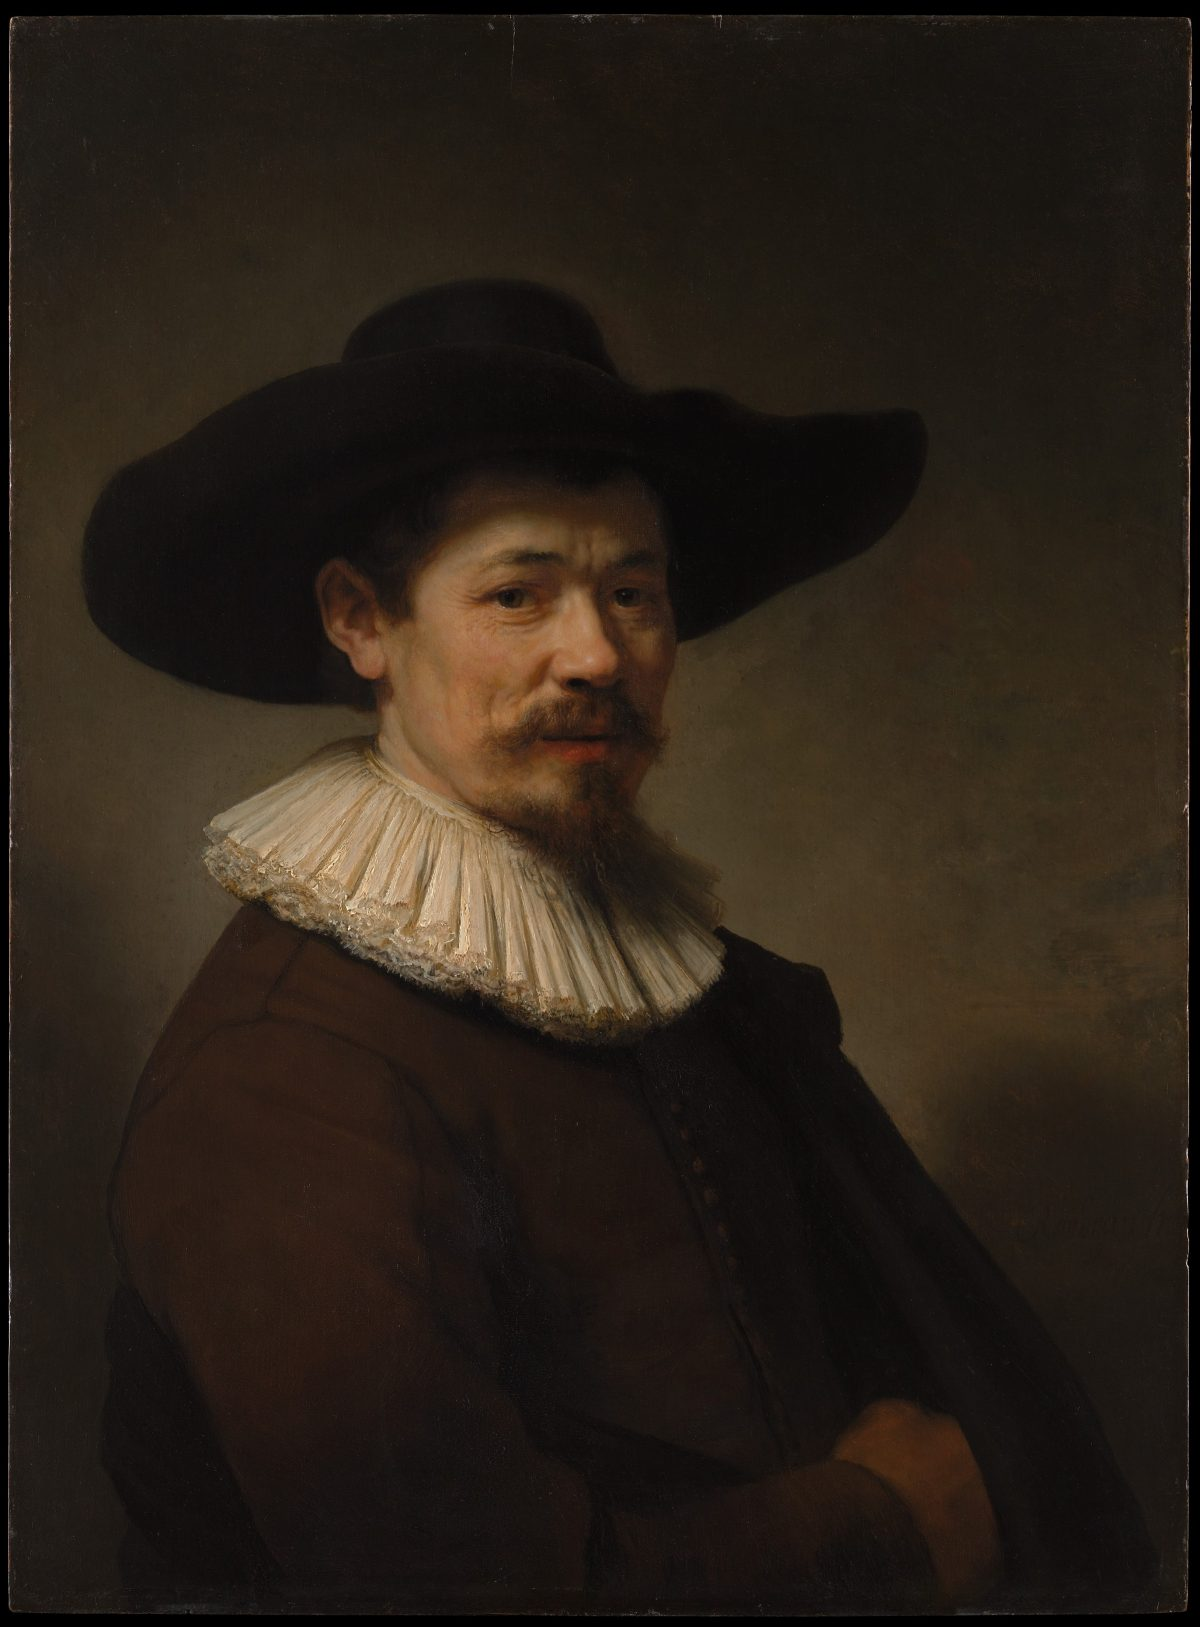 Herman Doomer portrait by Rembrandt